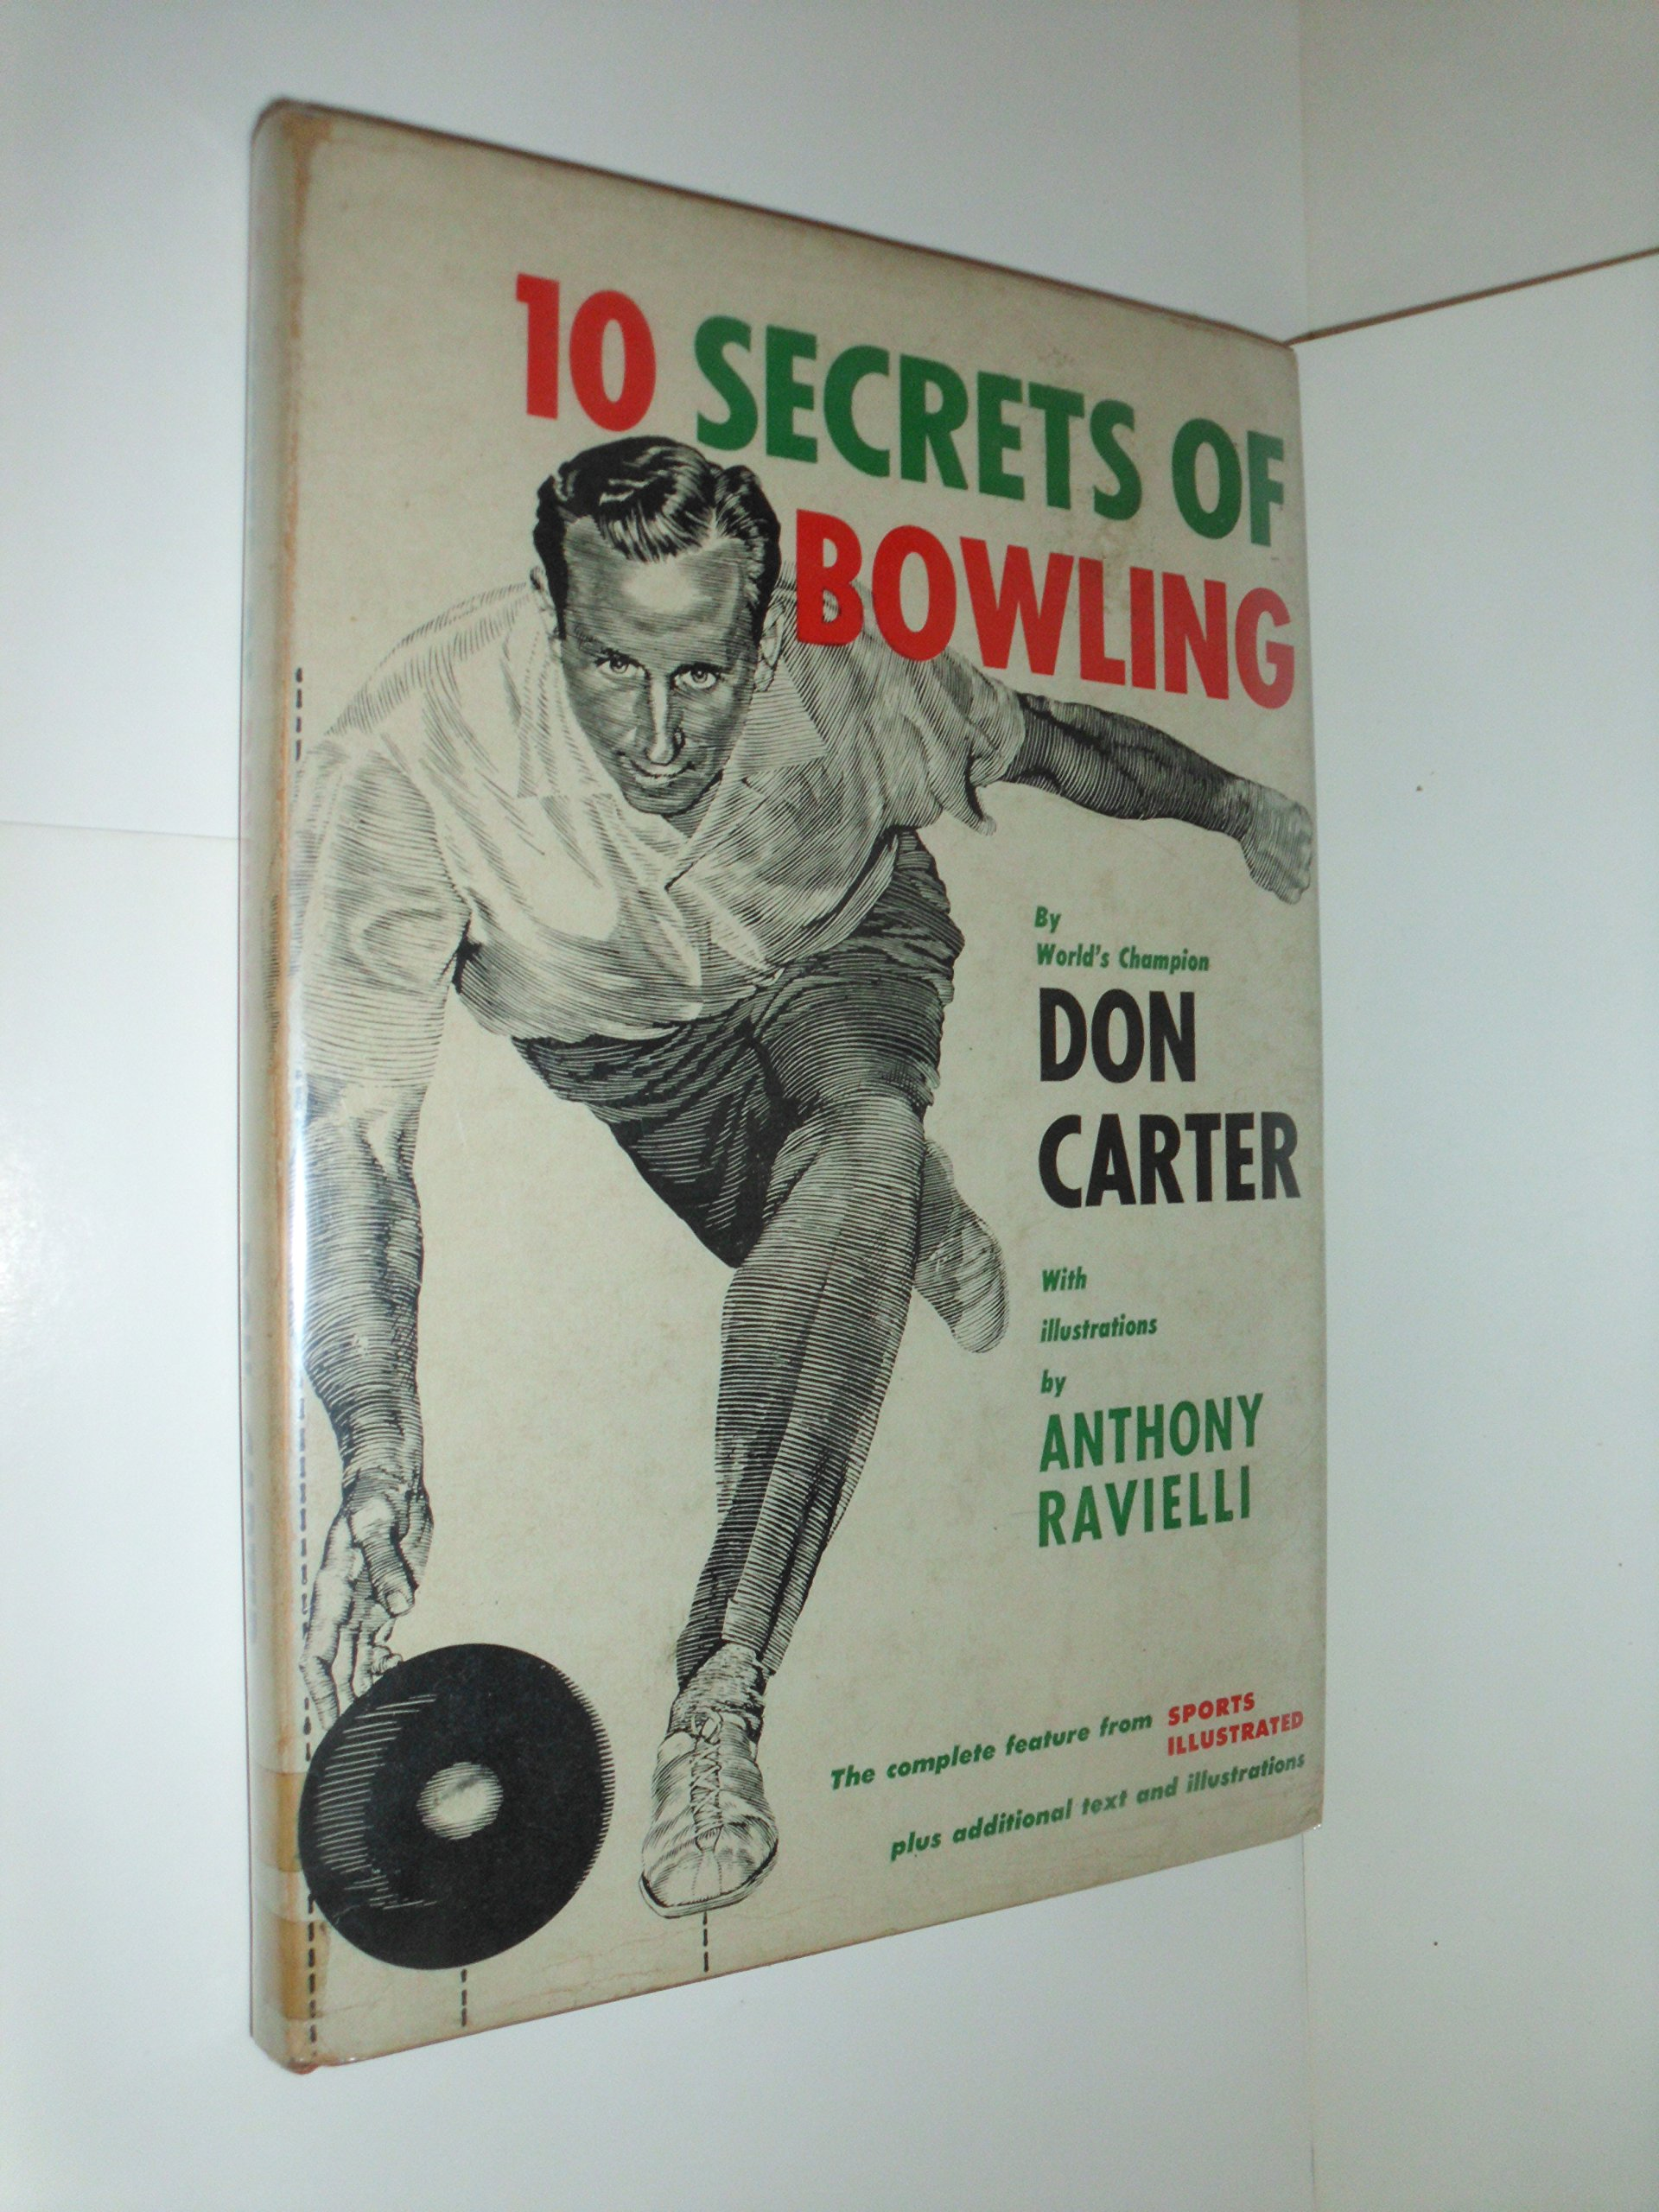 10 Secrets of Bowling. Illustrated by Anthony Ravielli